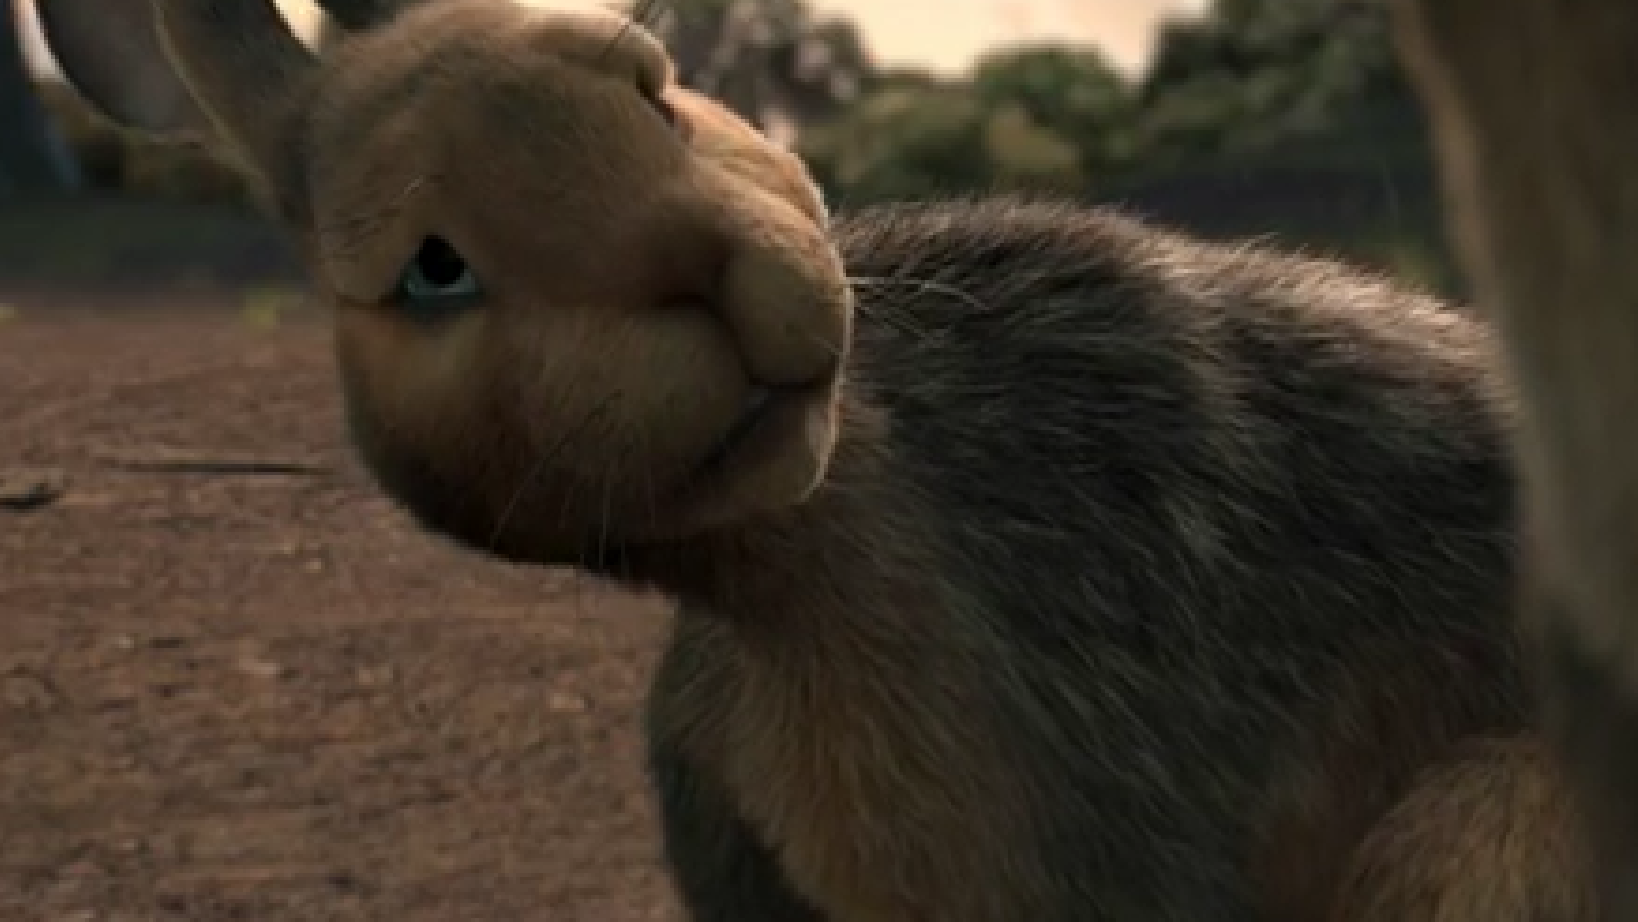 BBC's Watership Down remake has a big problem with its animated rabbits, fans claim